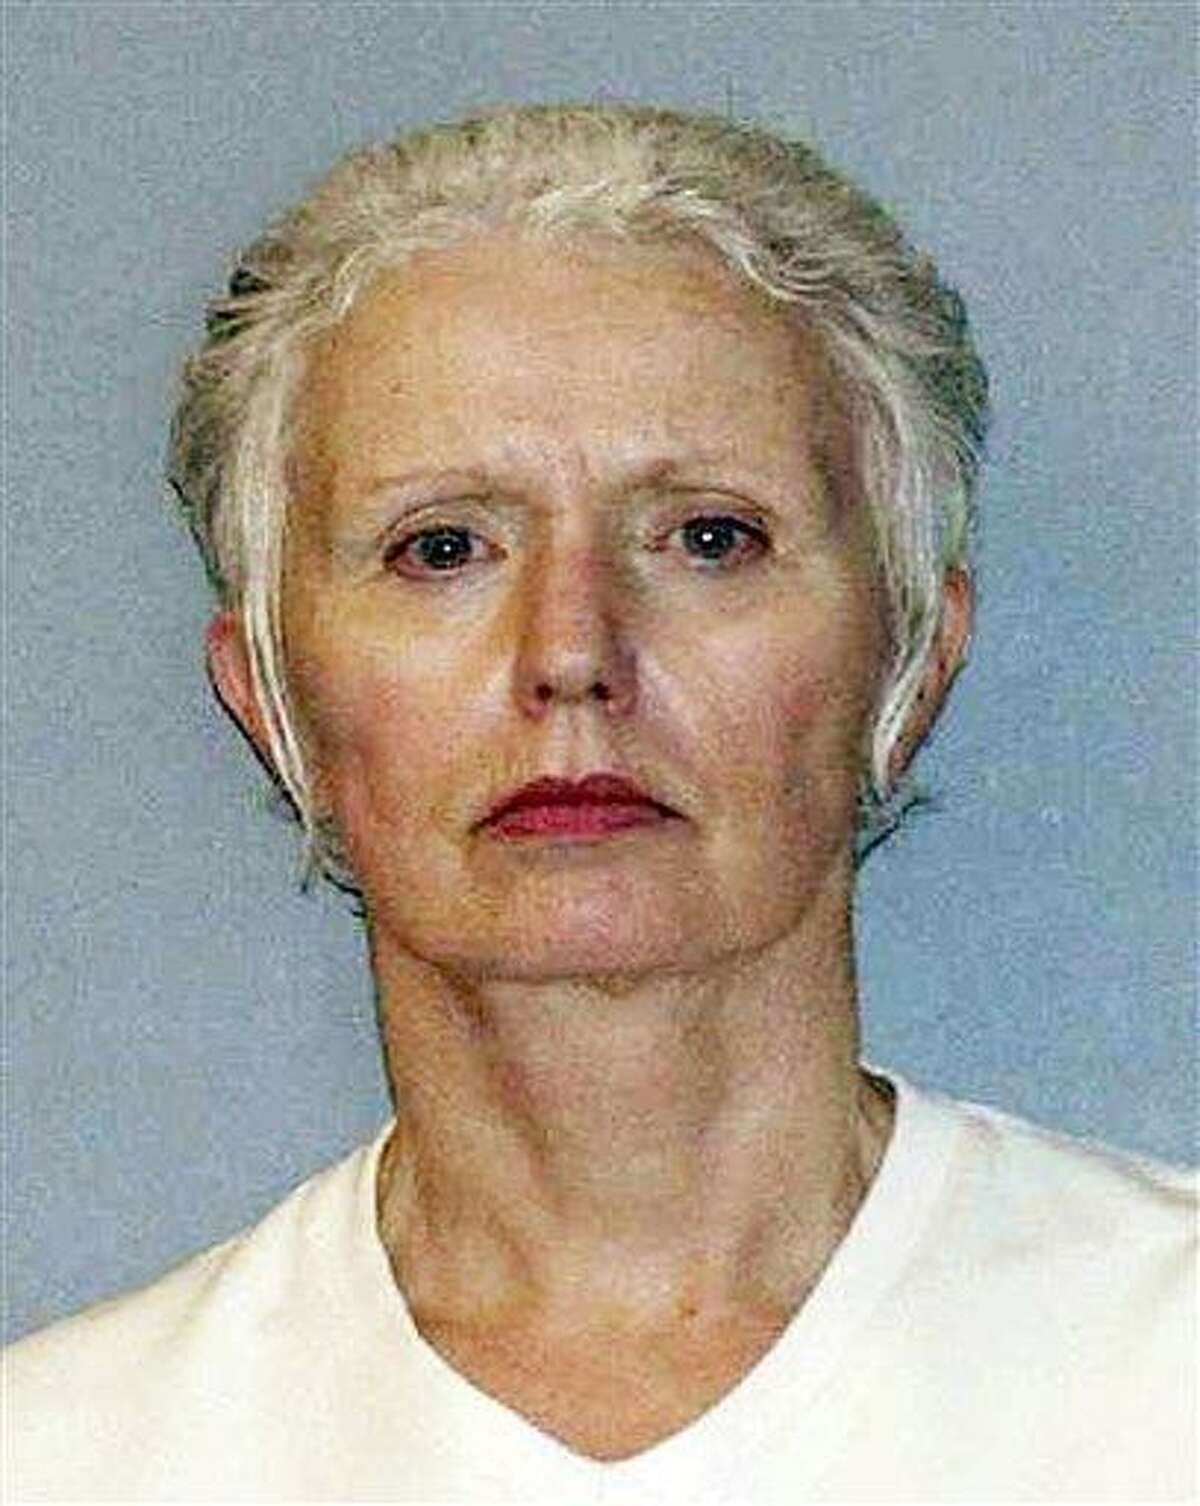 This undated file photo, provided by the U.S. Marshals Service, shows Catherine Greig, the longtime girlfriend of Whitey Bulger. Associated Press